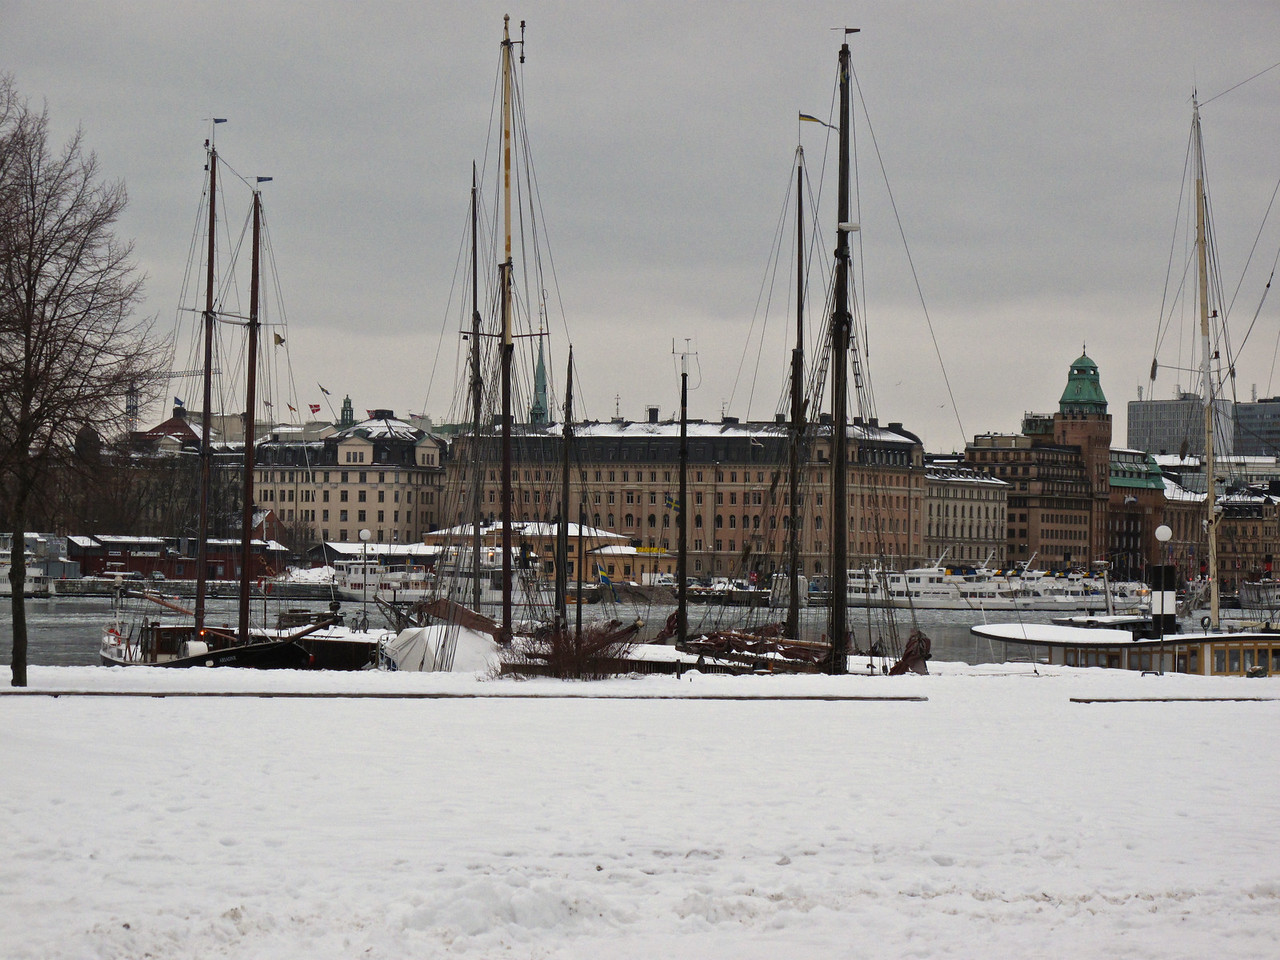 These boats sit along the Strandvagen in Stockholm  Here boats used to bring firewood from the other islands in the city.  When the practice stopped in the 1950s, many people started buying up the boats.  Two associations were formed to preserve the ideology of the place and the boats.